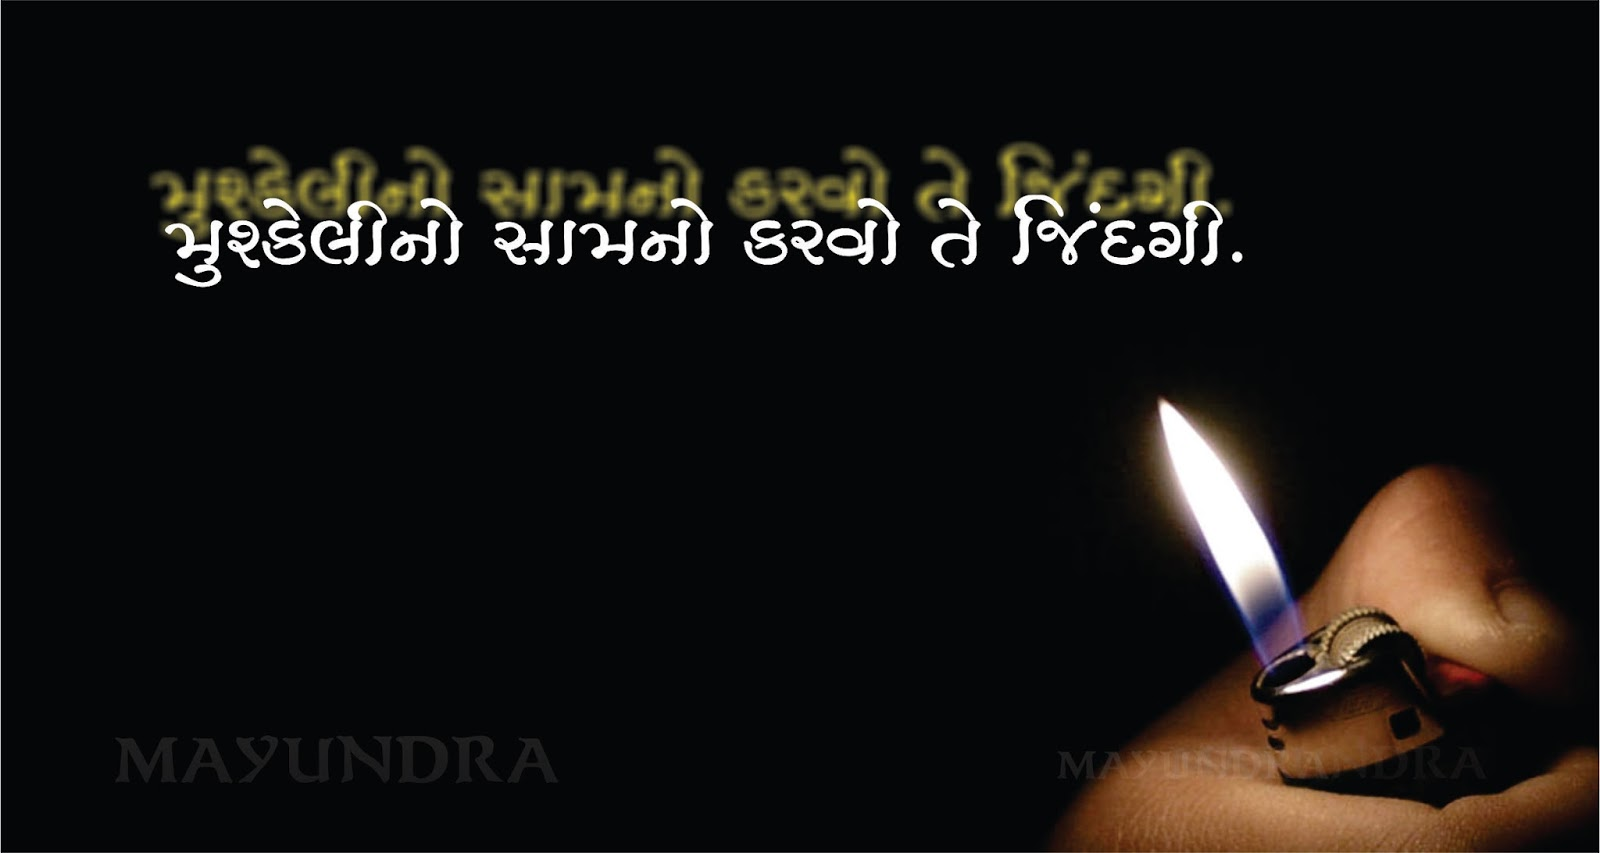 Gujarati Quotes On Life Quotes India Quotes Health Tips Yoga